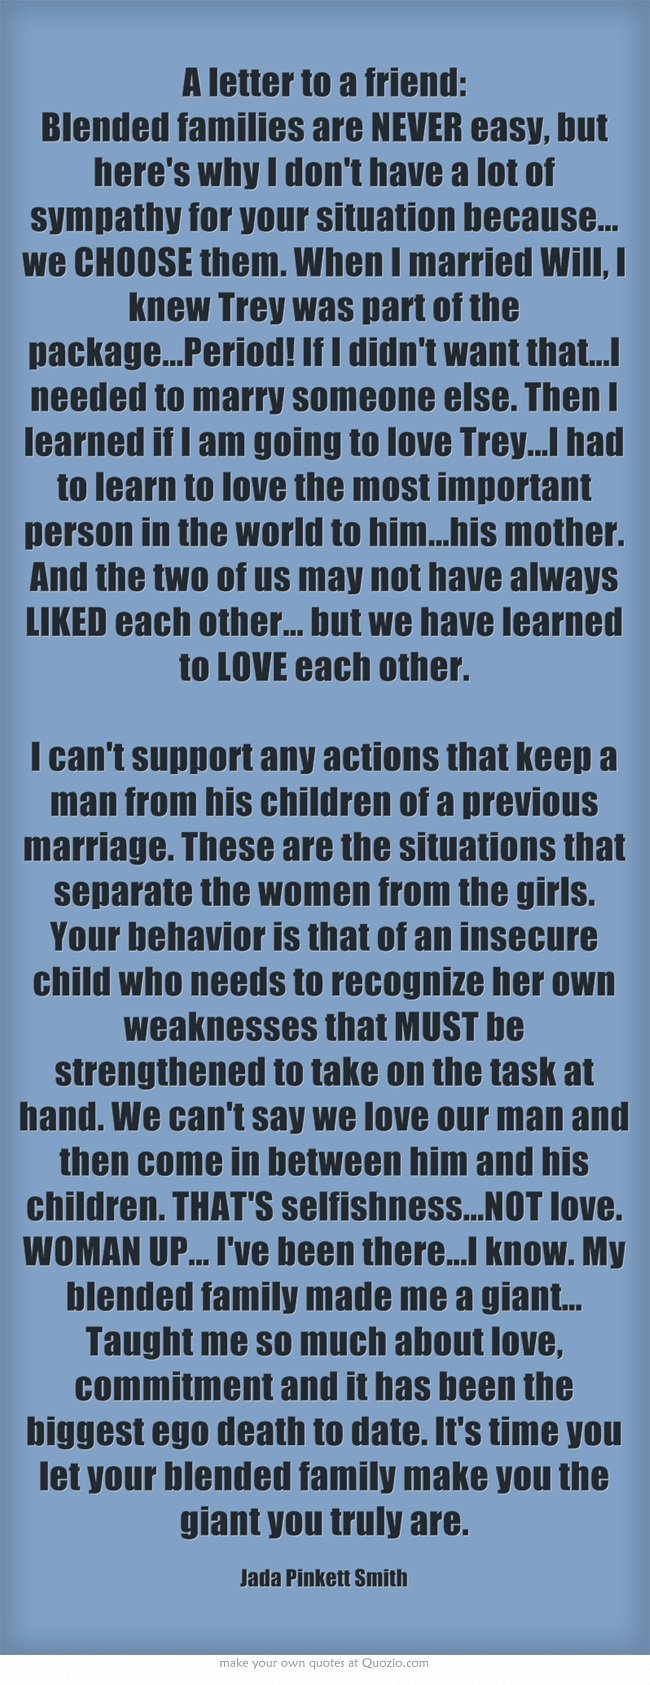 Quotes about Blended Families (37 quotes)